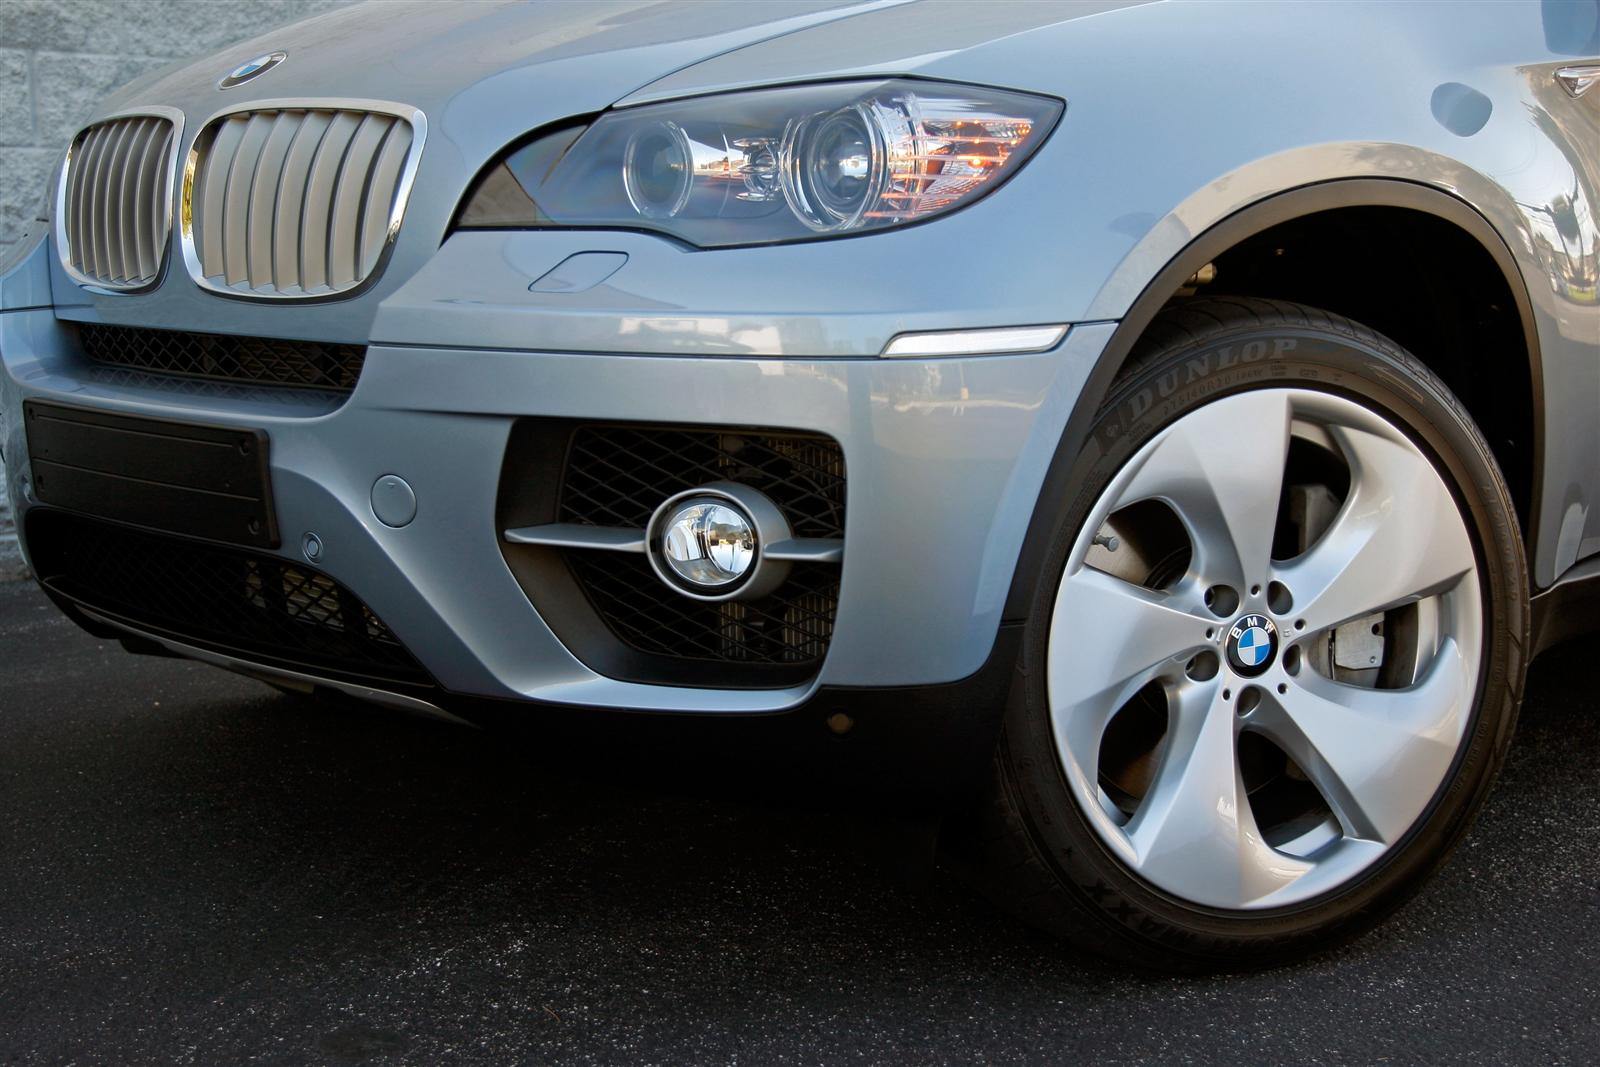 x6 e72 activehybrid bumper 20100501 1865039477 I found everything I needed at Target, and got all the accessories for ...